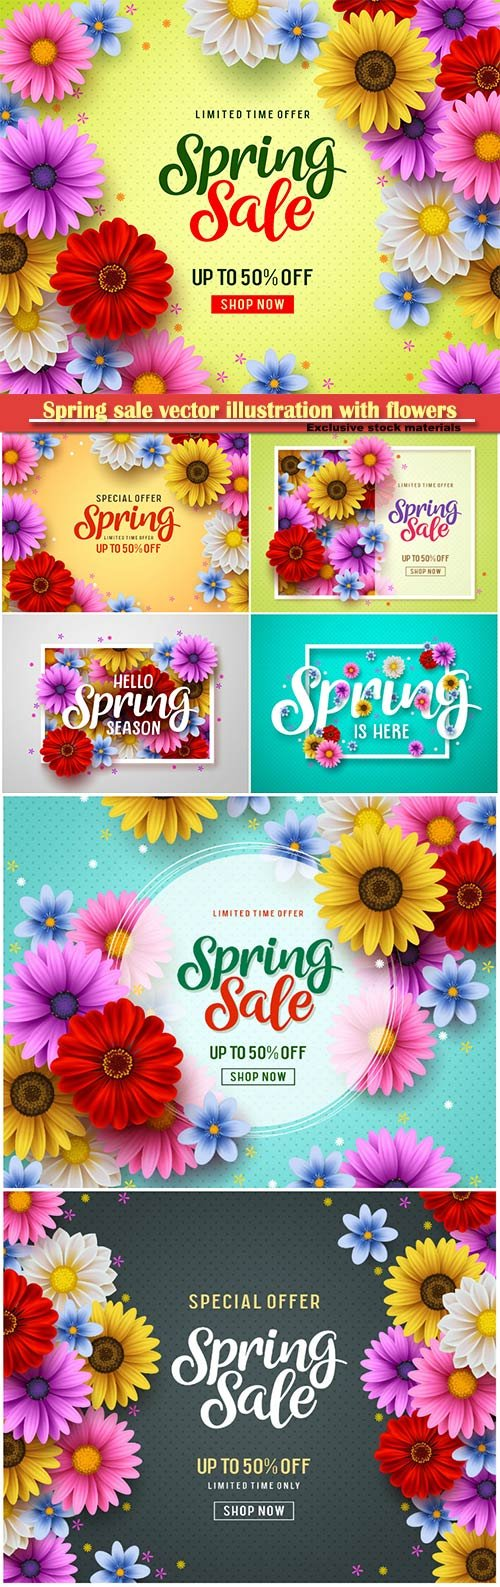 Spring sale vector illustration with flowers